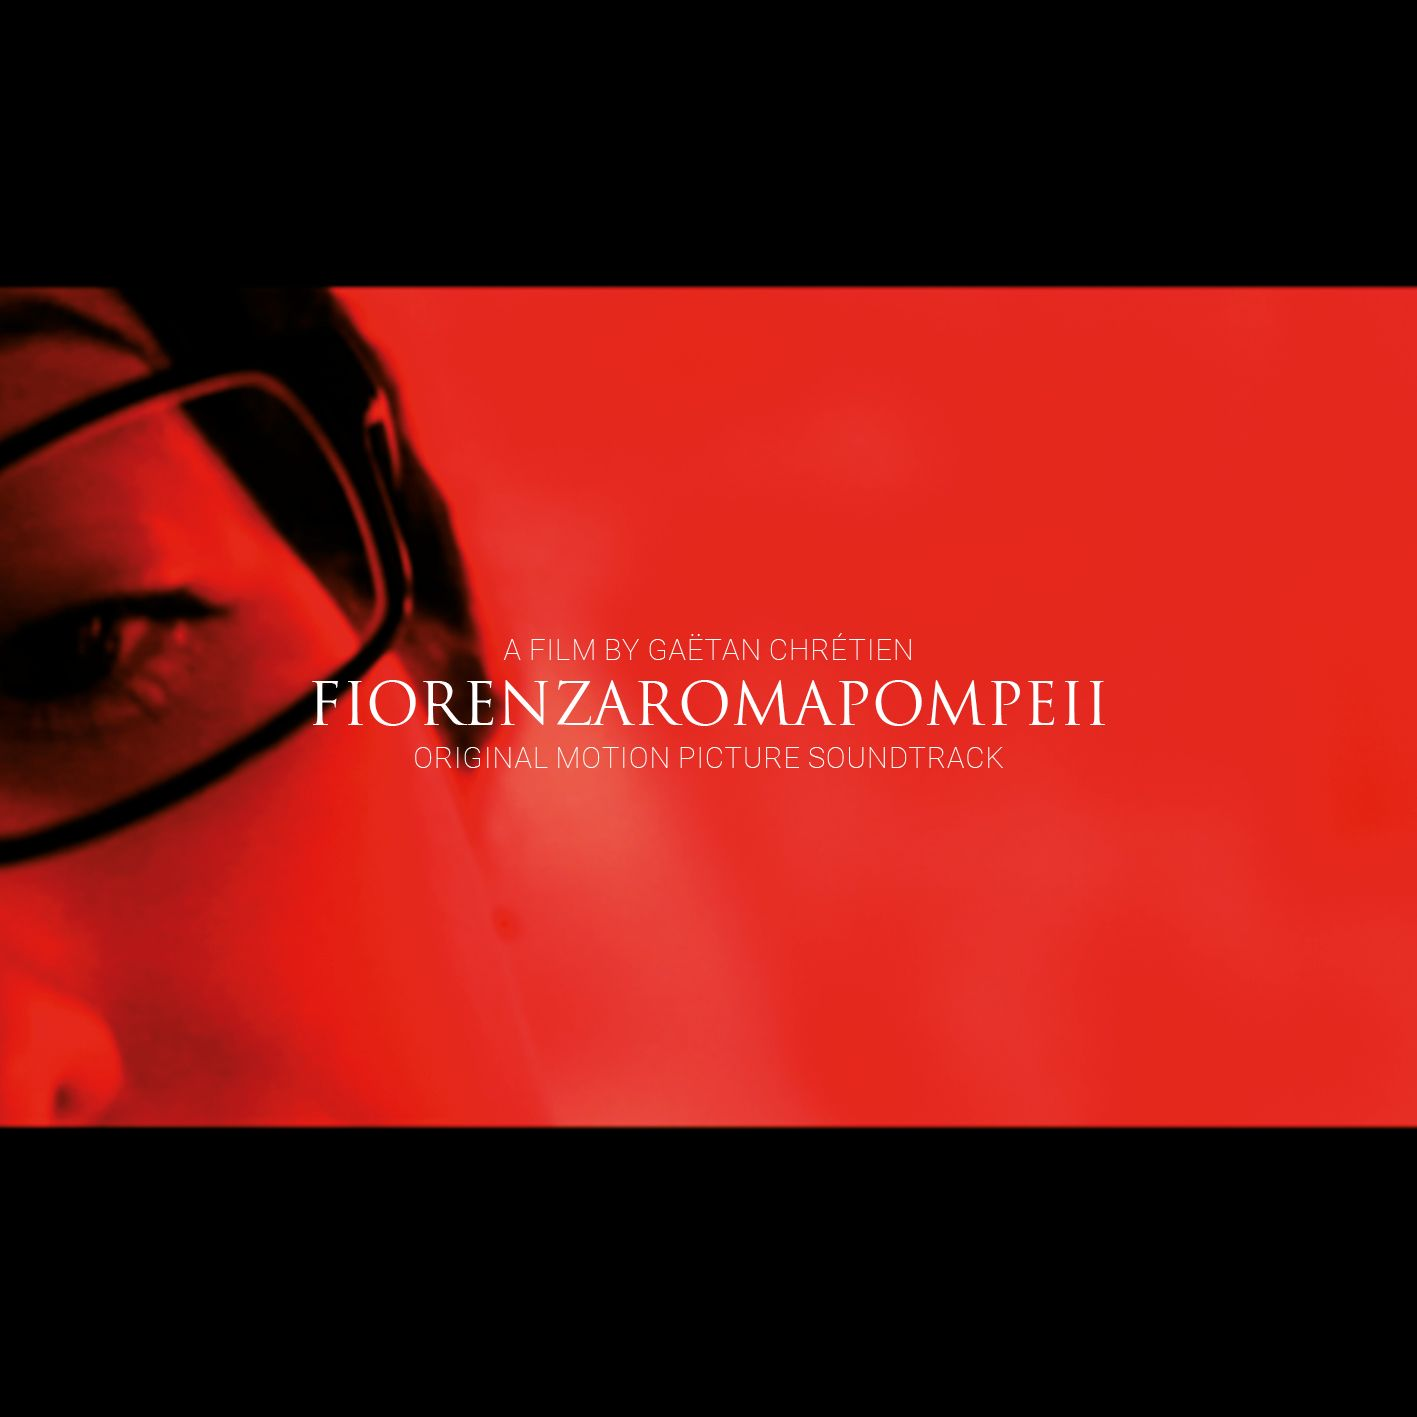 G Λ Ë T V И C Ҥ Я Σ T I Ξ И - FIORENZAROMAPOMPEII (front)